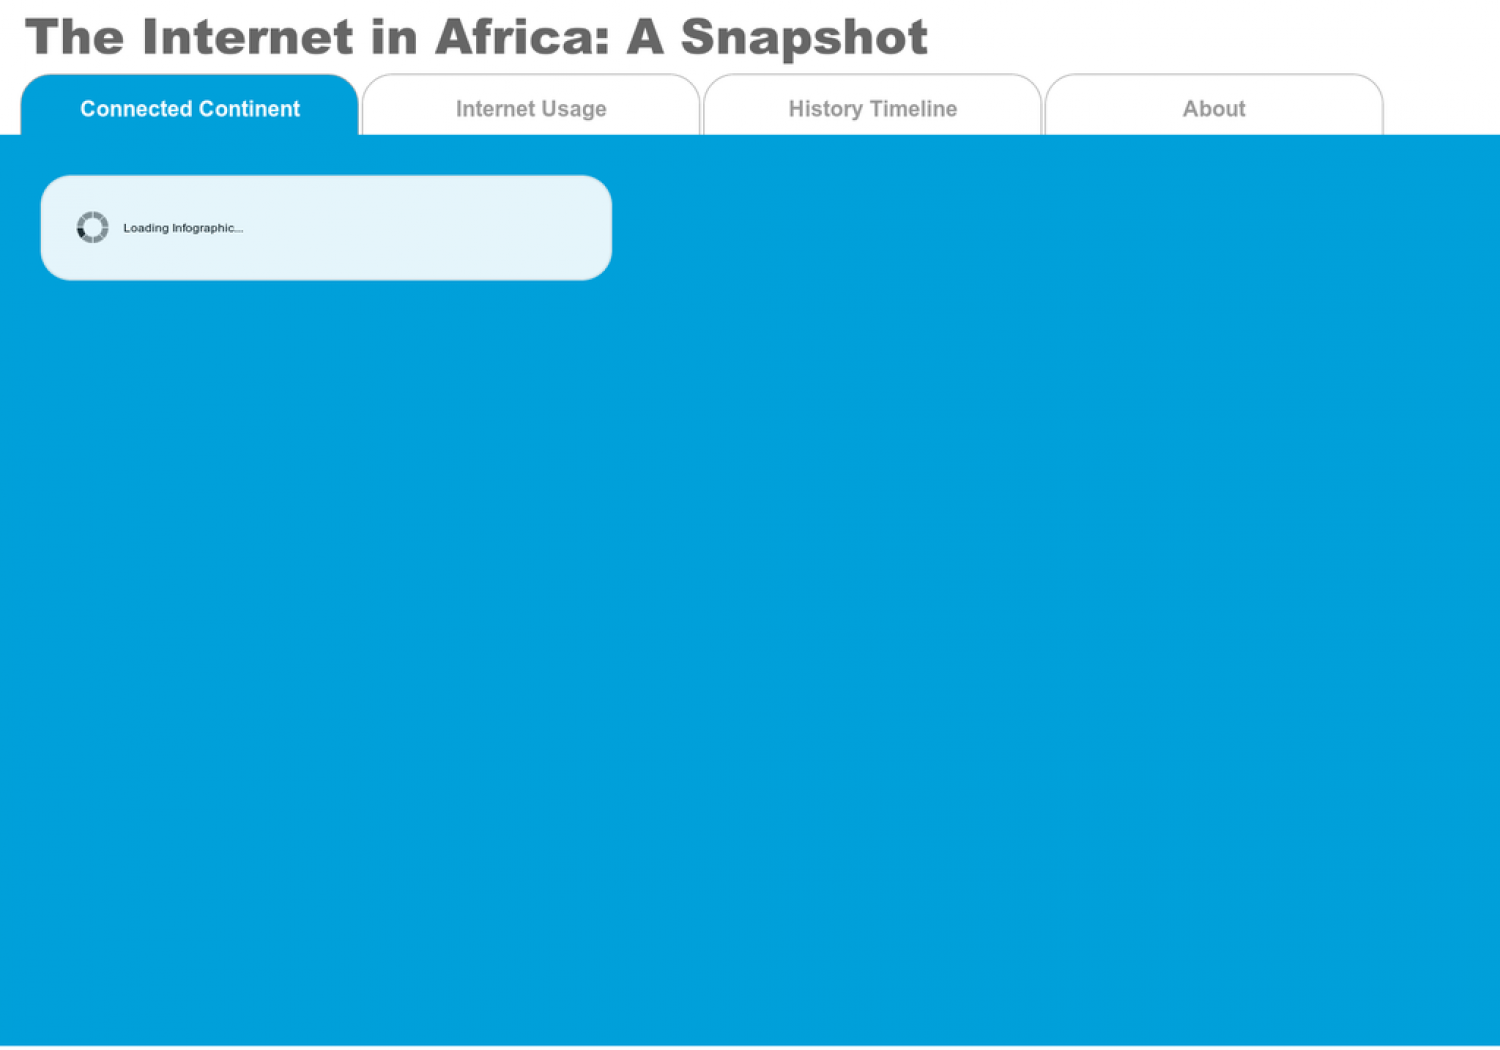 The Internet in Africa: A Snapshot Infographic